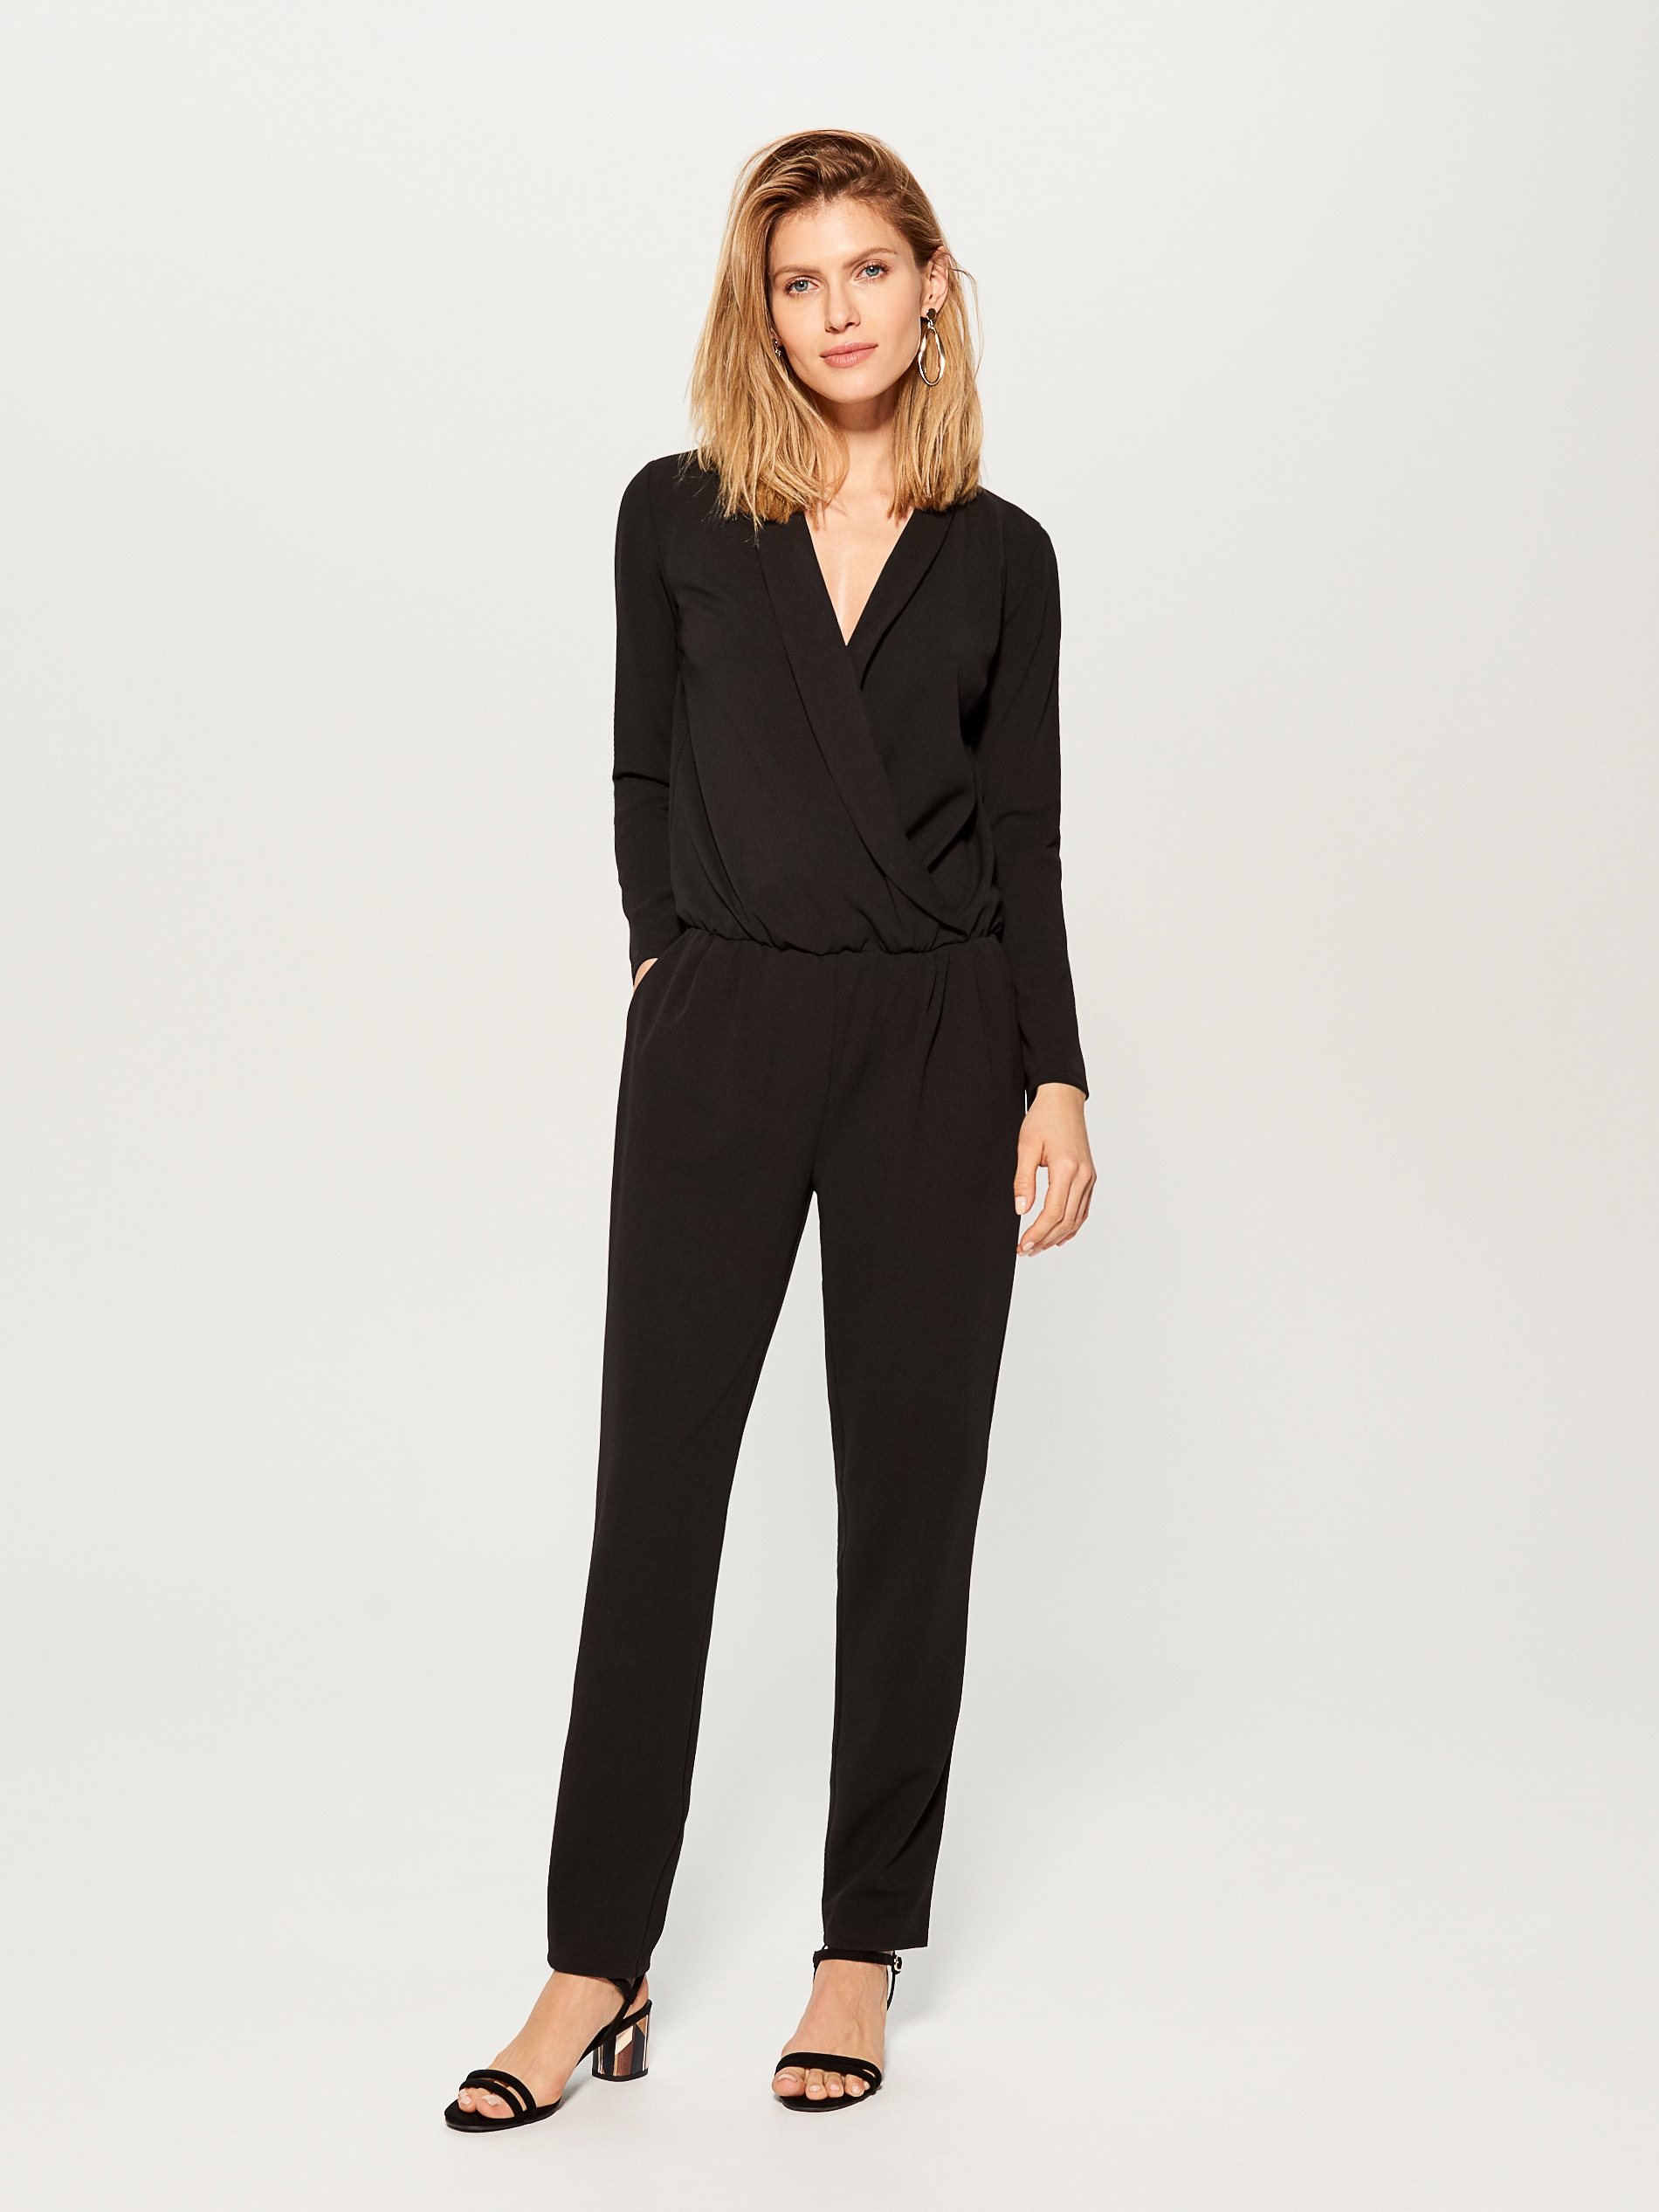 6748903ab2 Wrap front jumpsuit - black - UY890-99X - Mohito - 1